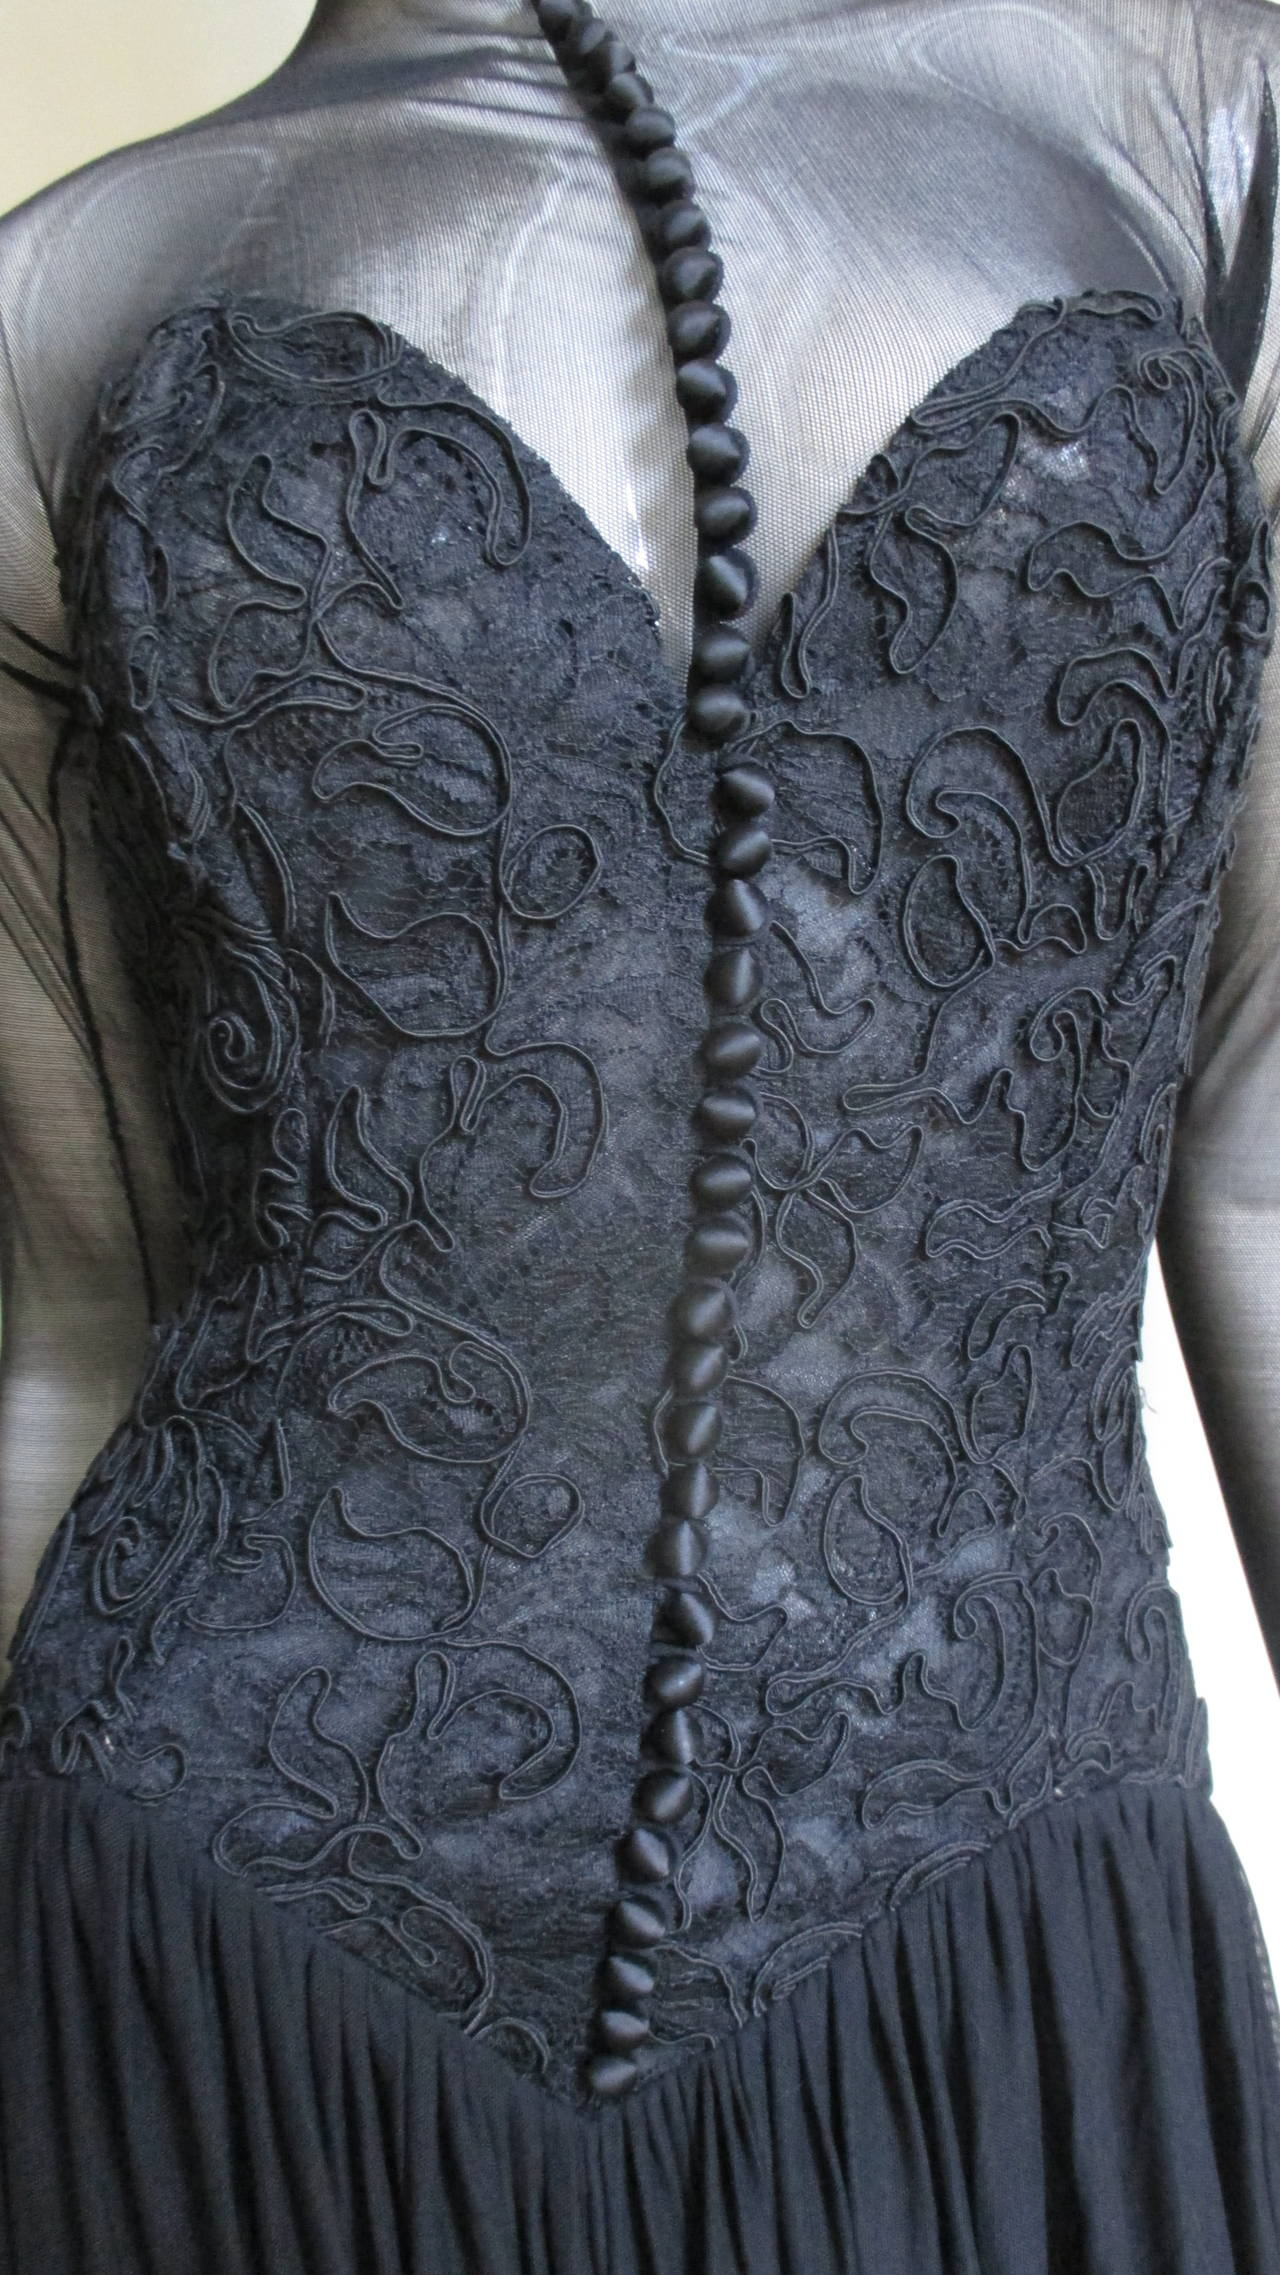 1980s Vicky Tiel Corset Dress In Excellent Condition For Sale In New York, NY